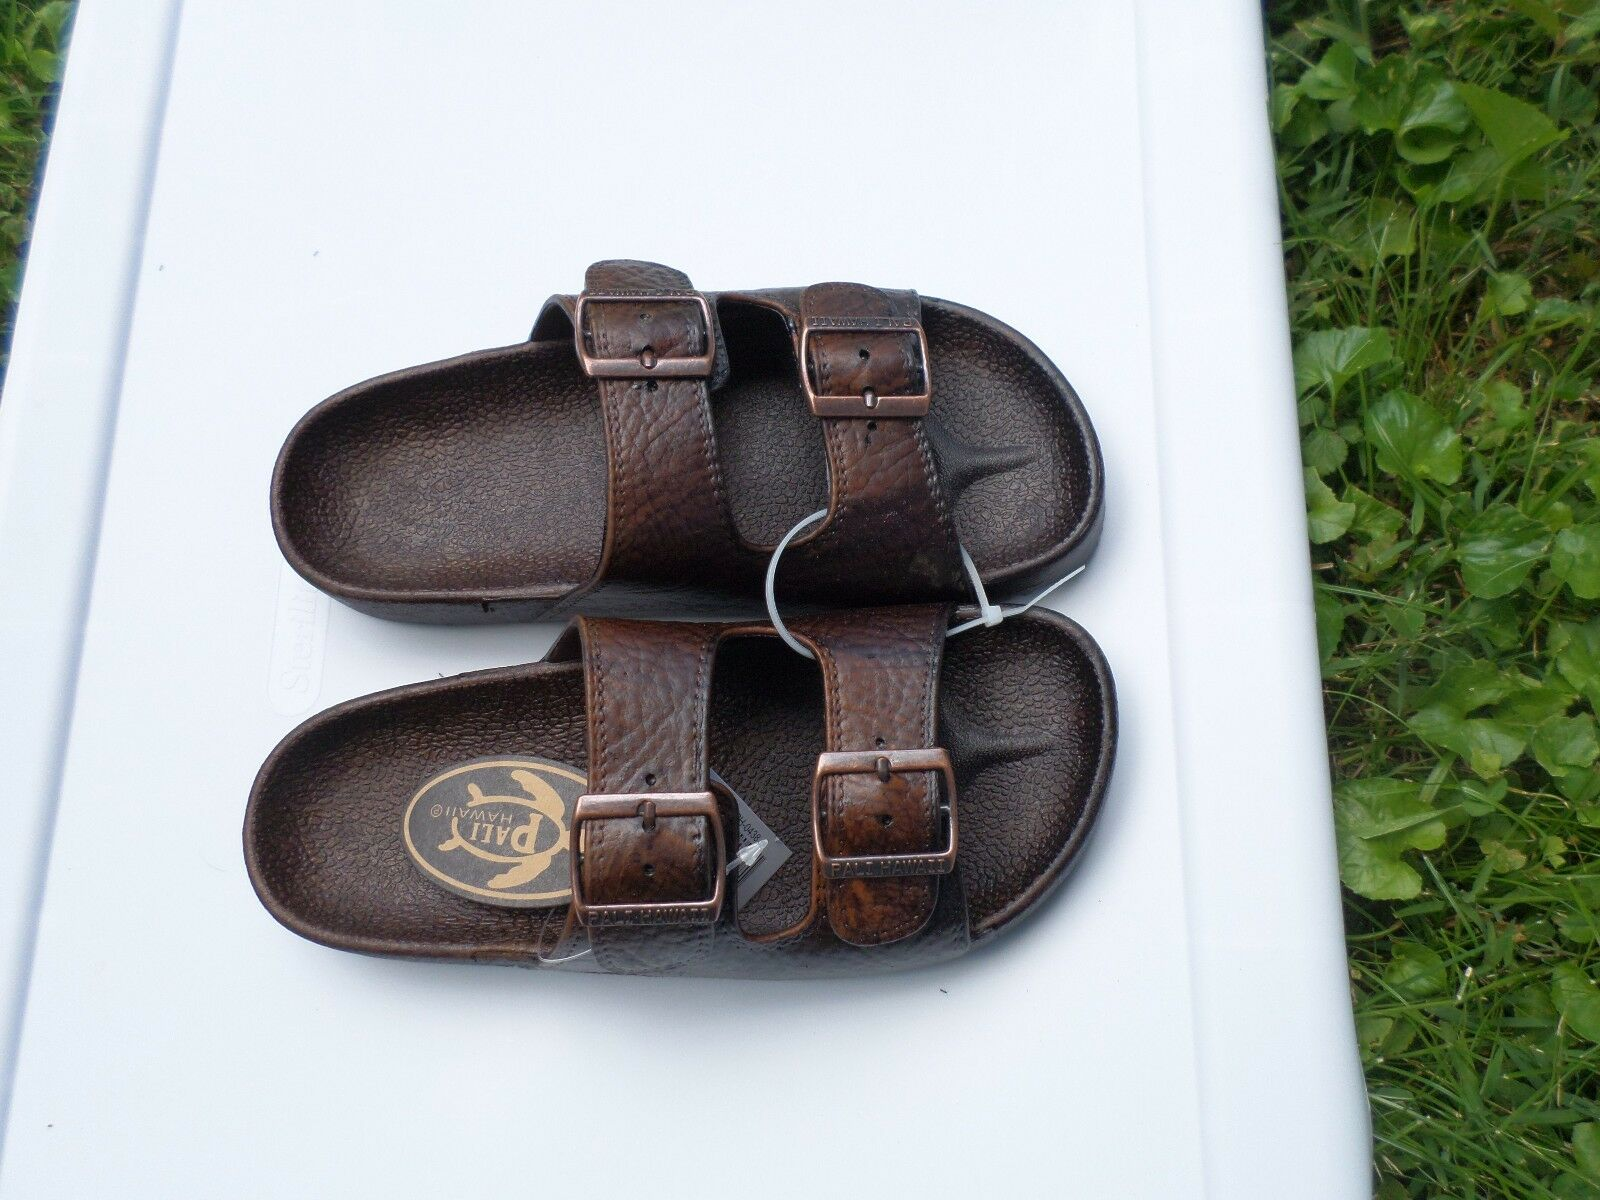 Pali Hawaii Sandals PH438 -MEN'S SIZE  BUCKLE 1 PAIR SIZE -MEN'S 7 DARK BROWN 429d39